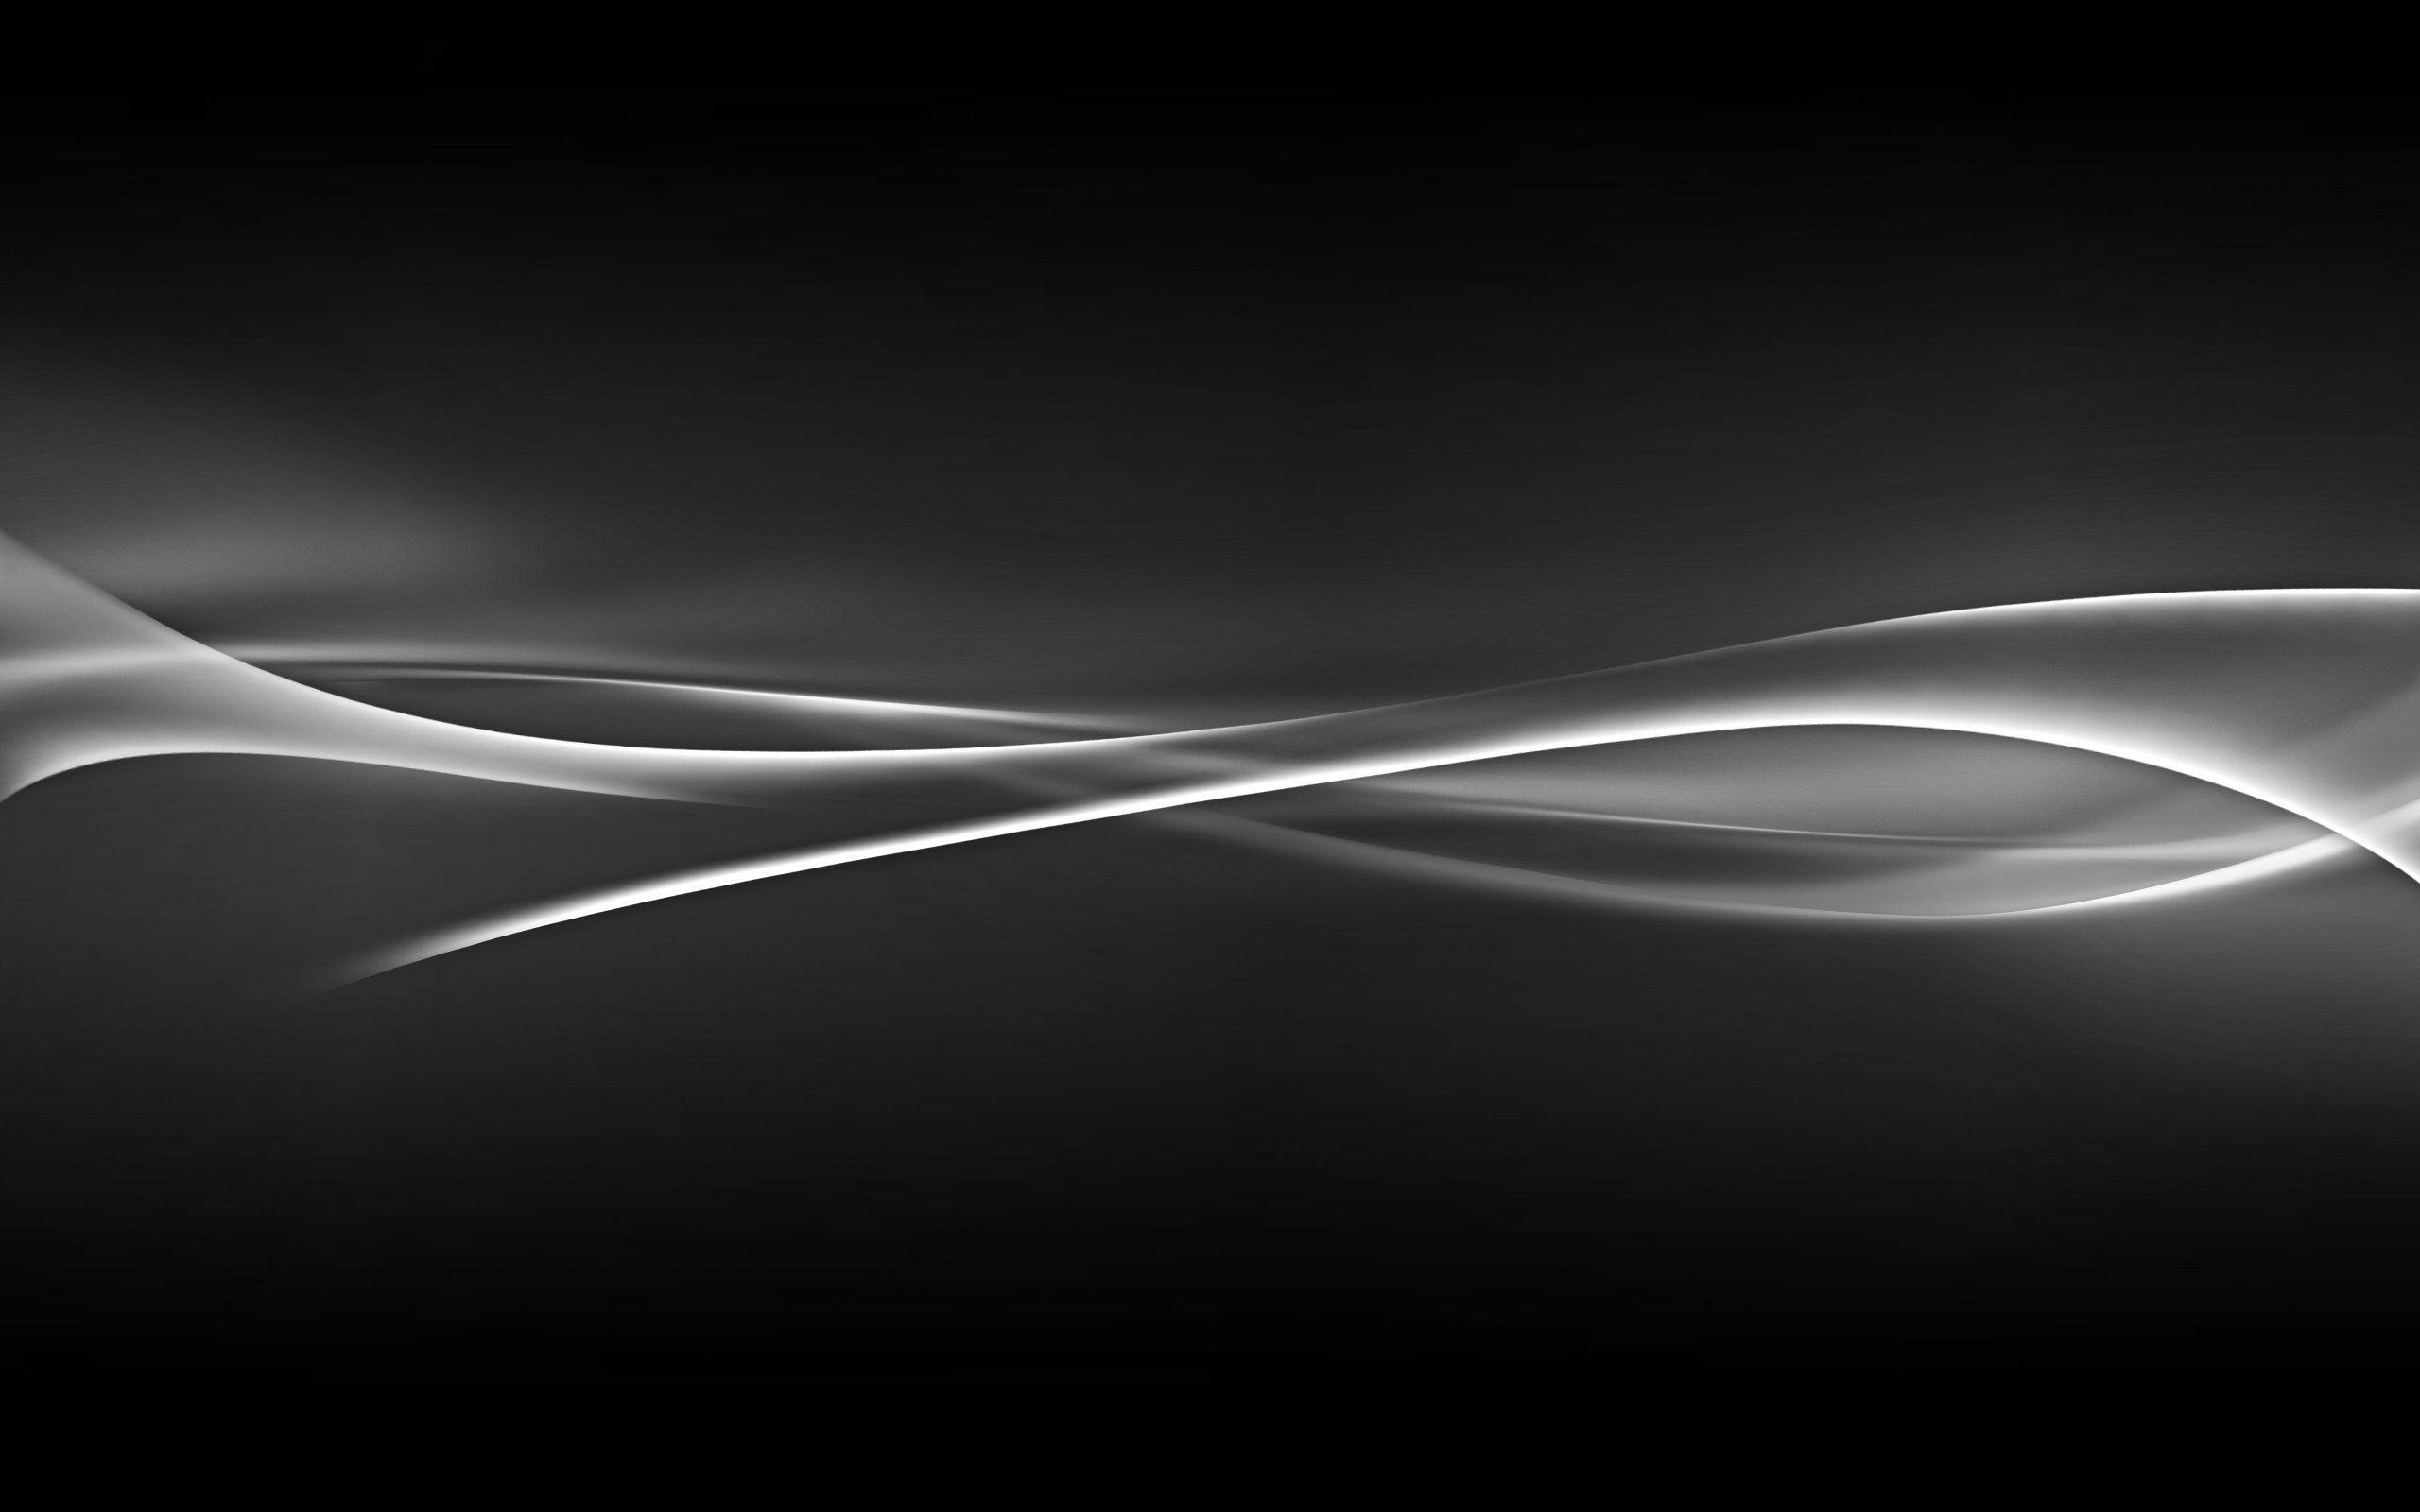 ... and white abstract swirls hd wallpaper background « HD Wallpapers